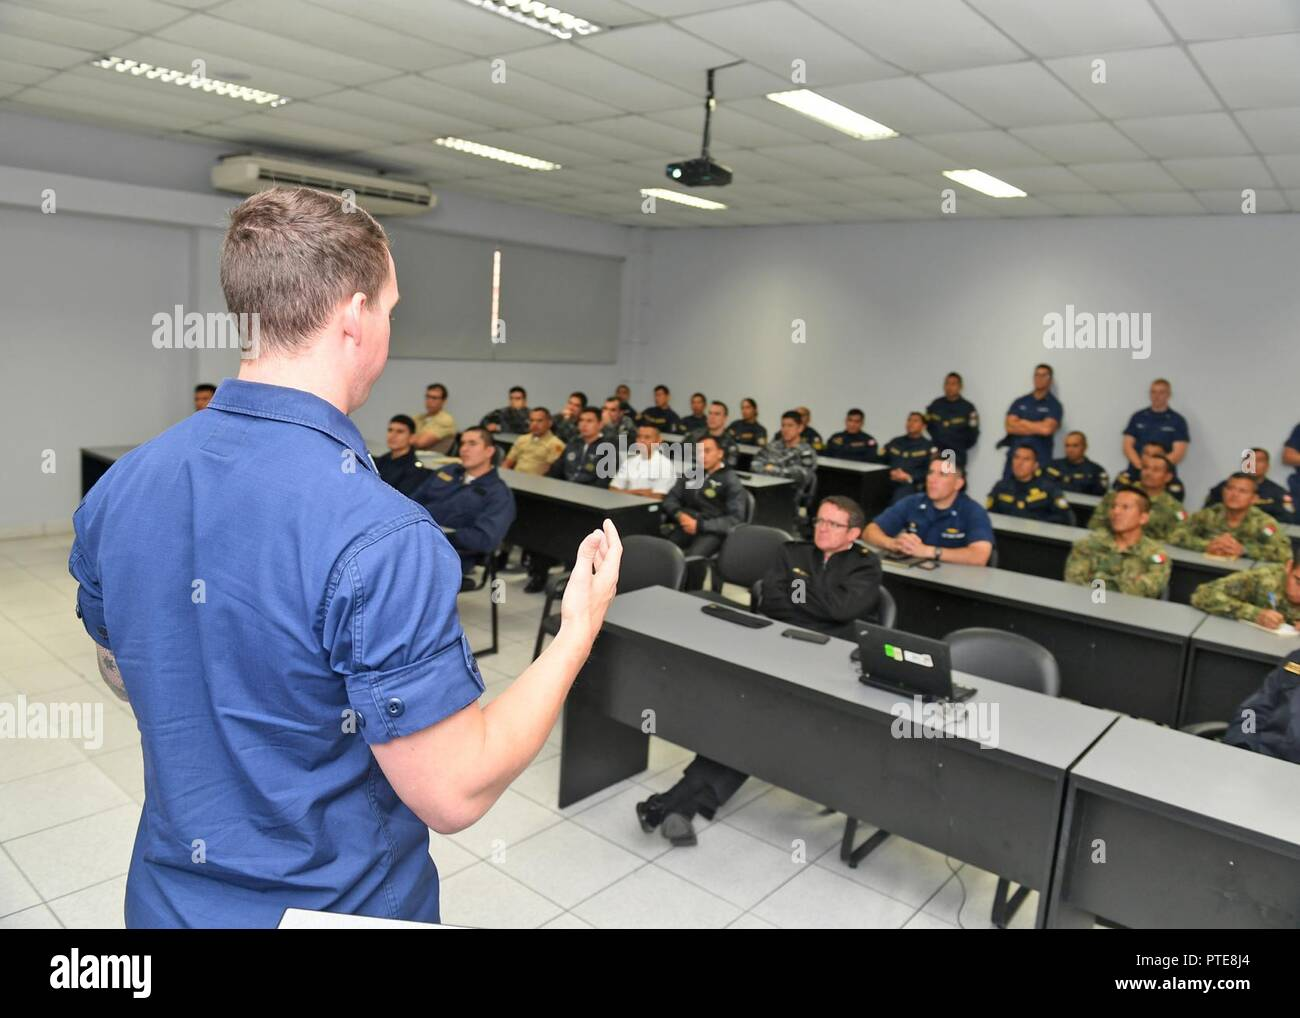 Peru (July 16, 2917) - U.S. Coast Guard Lt. Andrew Ray conducts a maritime law enforcement symposium with UNITAS partner nation participants from Mexico, Peru, Honduras and Chile. UNITAS is an annual exercise that focuses on strengthening our existing regional partnerships and encourages establishing new relationships through the exchange of maritime mission-focused knowledge and expertise throughout the exercise. - Stock Image